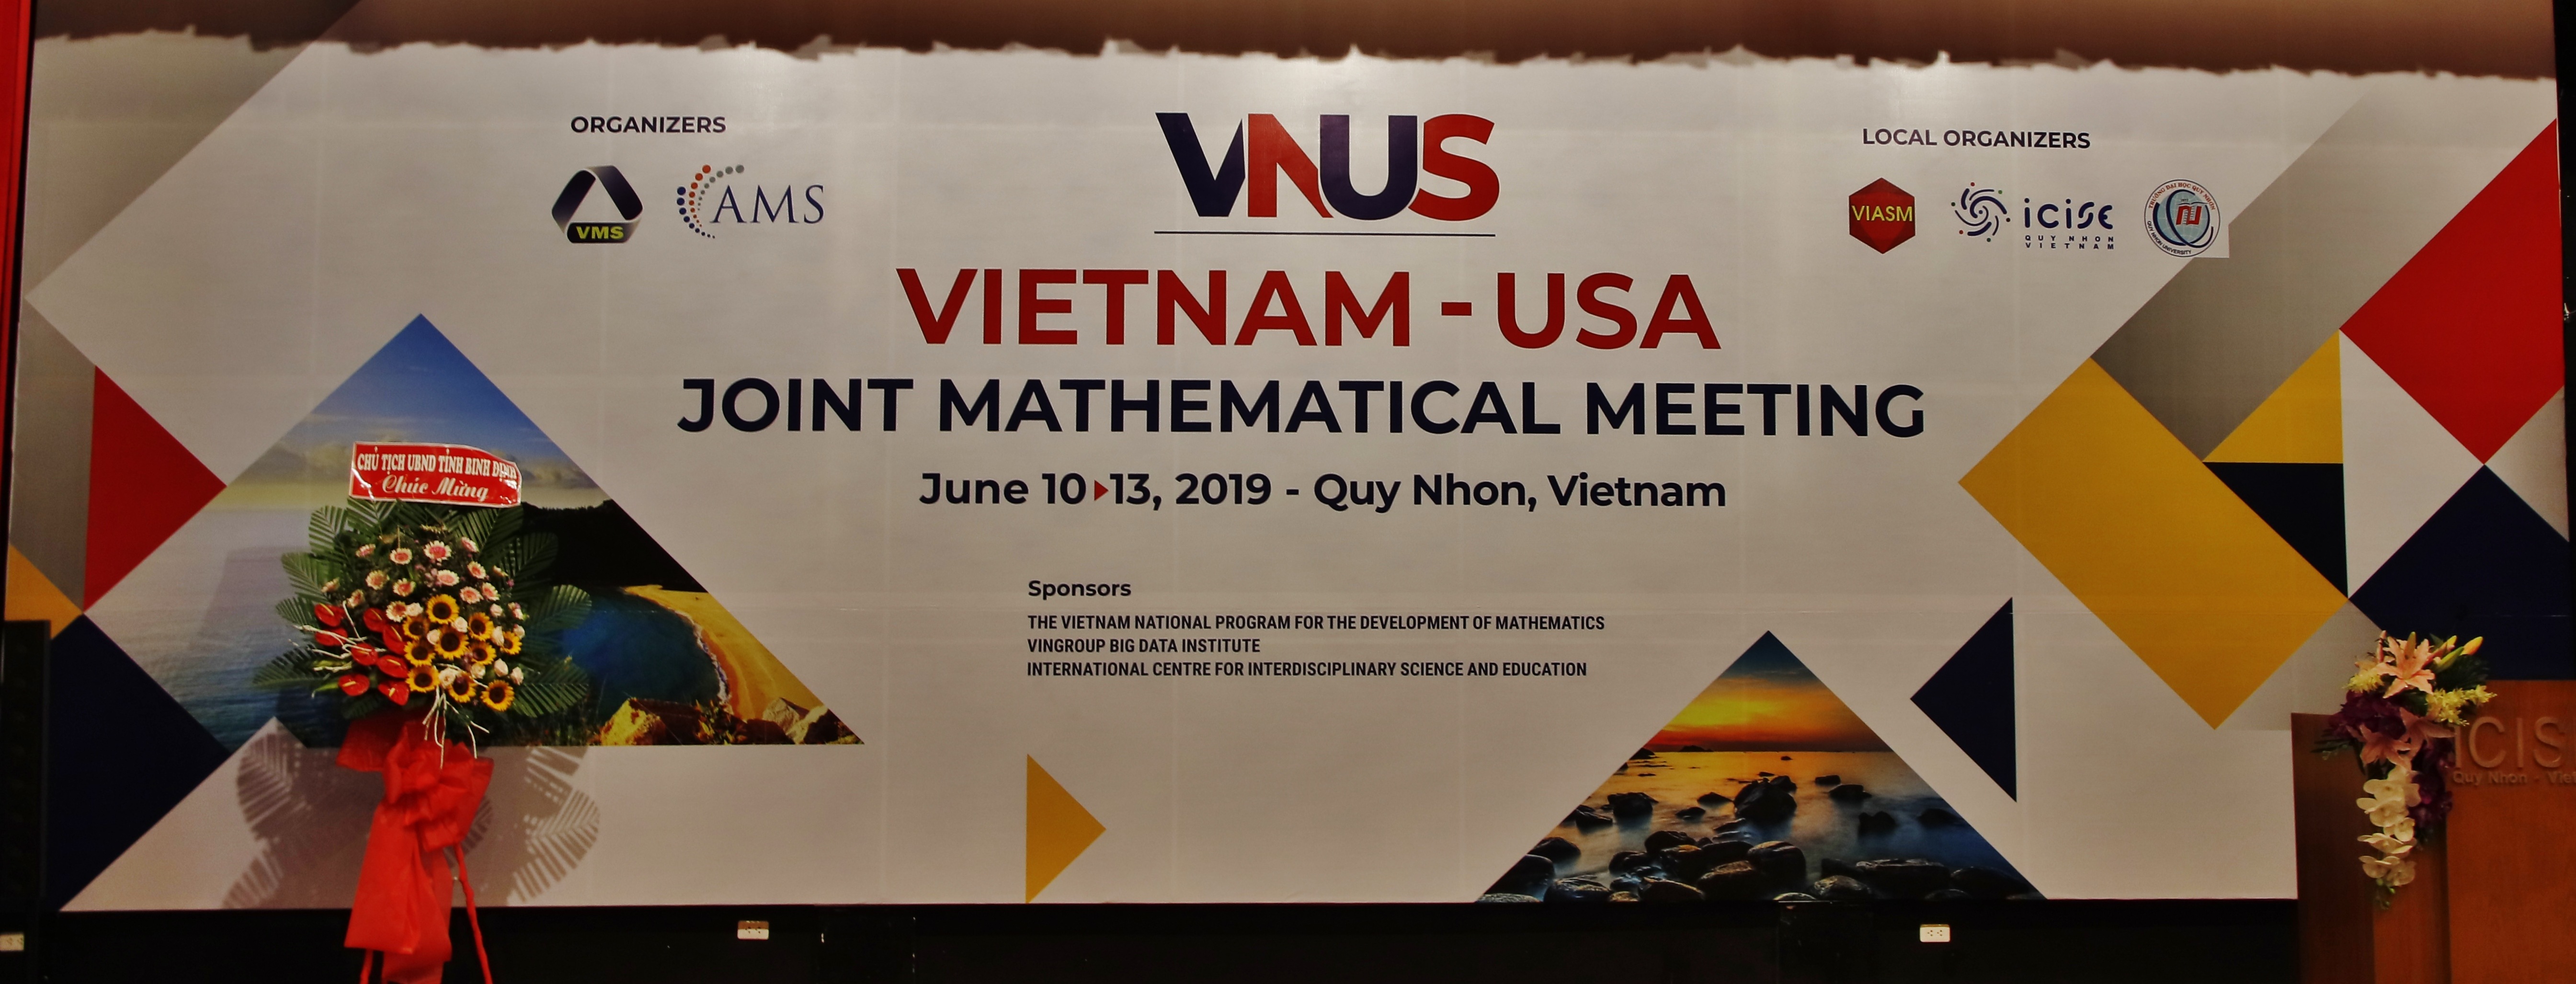 The Vietnam - USA joint Mathematical Meeting 2019